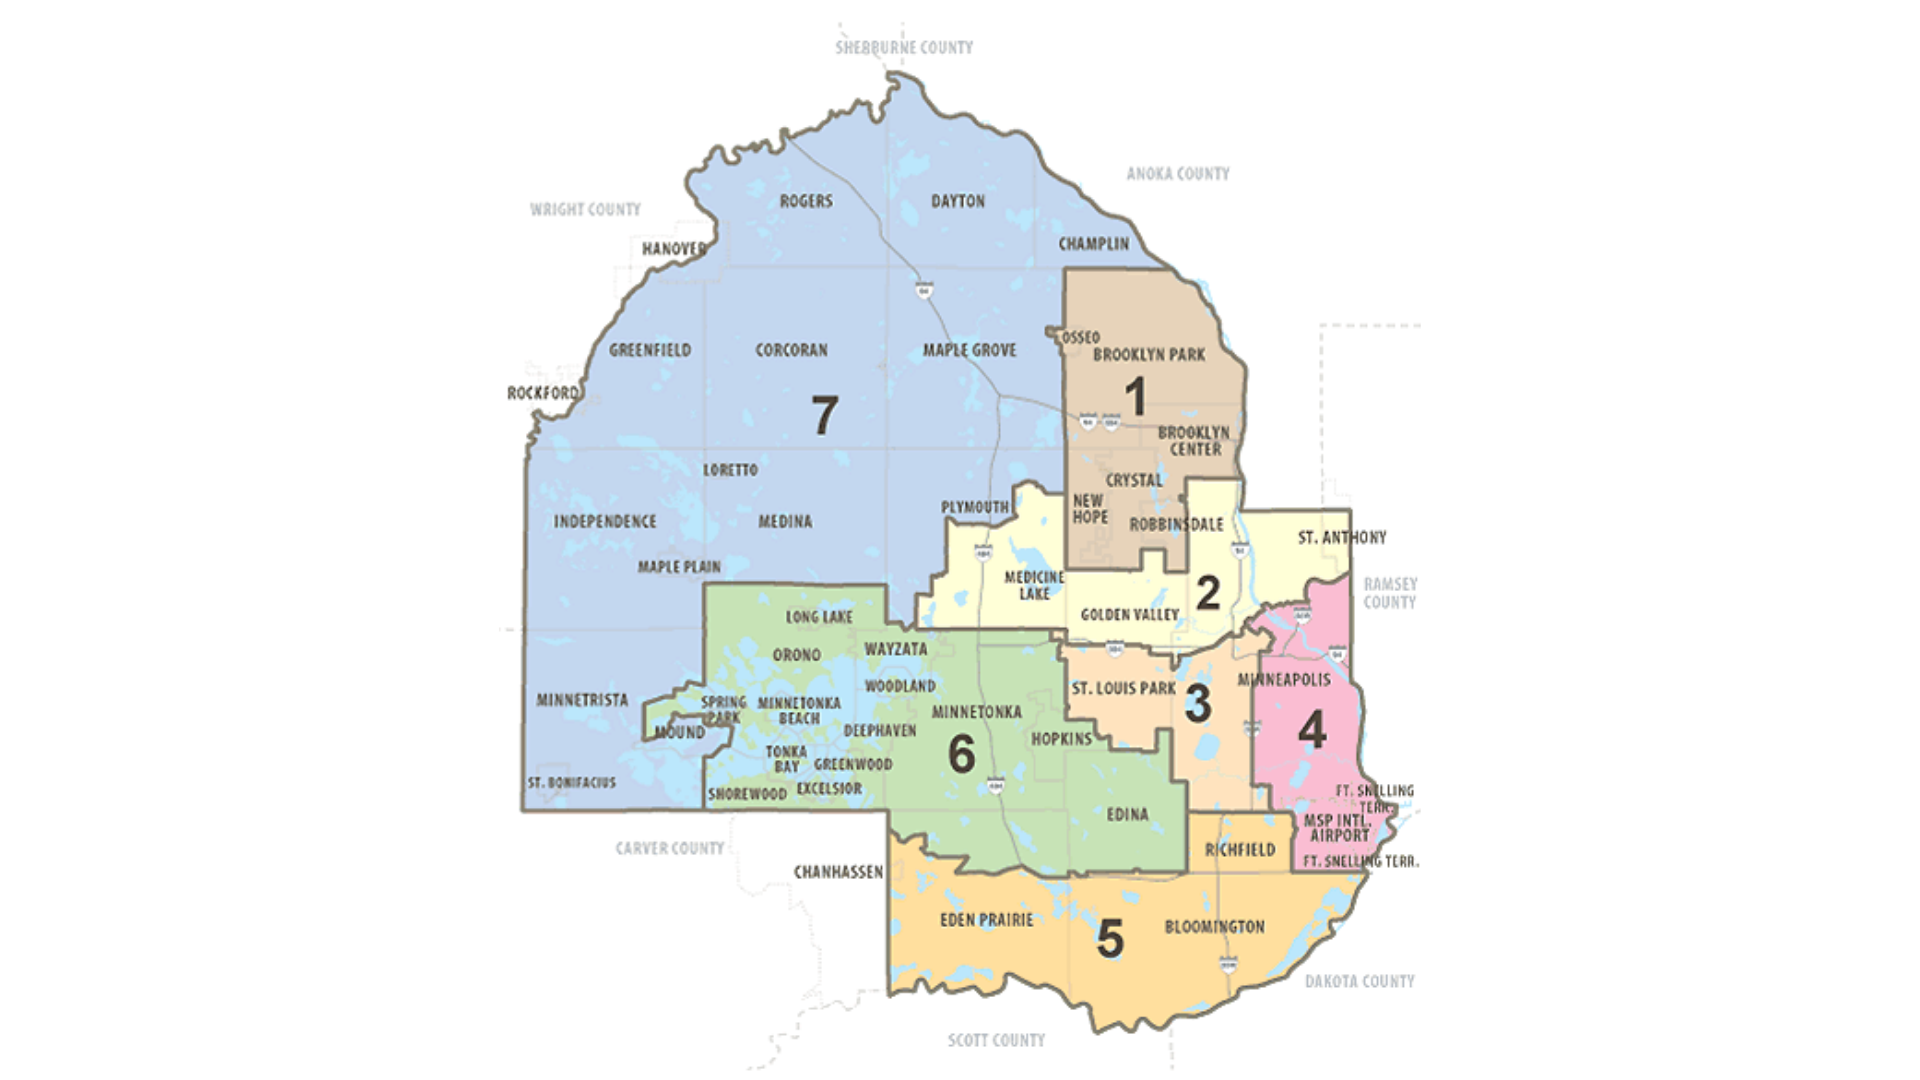 Hennepin County Commissioner Map